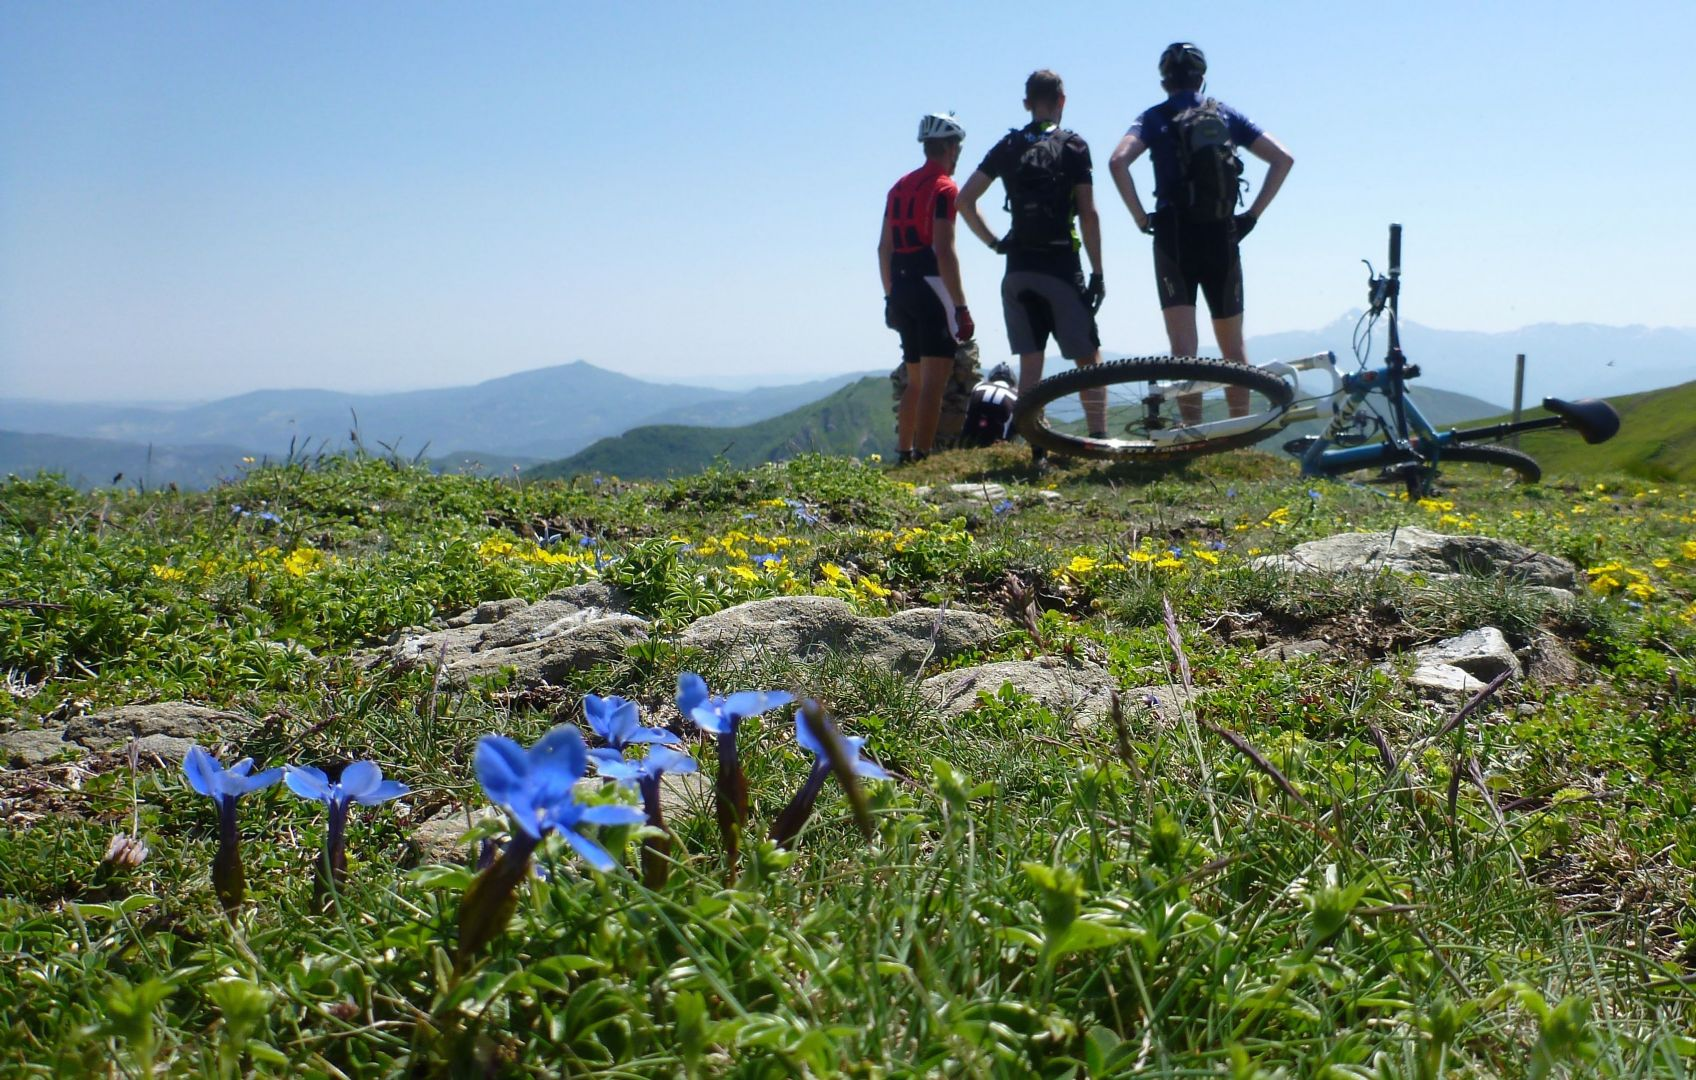 The roof of Tuscany.jpg - Italy - Tuscany - Secret Apennine Trails - Italia Mountain Biking